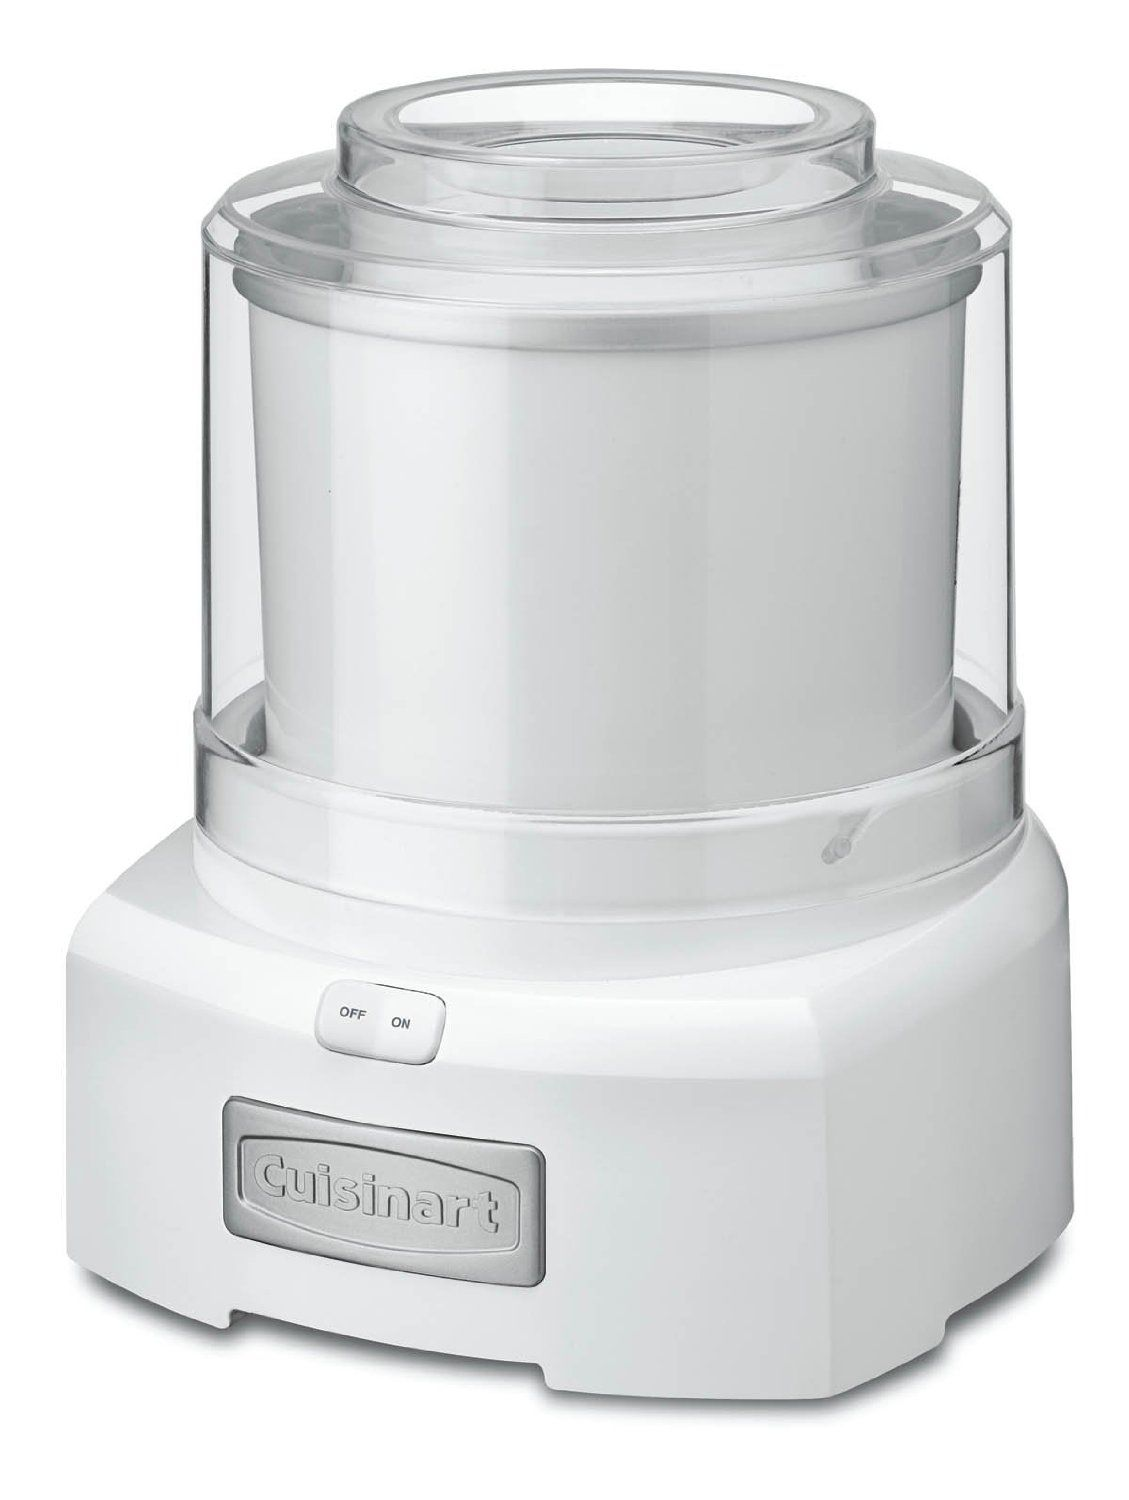 Amazing Benefits Of Having A Cuisinart Ice Cream Maker Manual At Home Best Ice Creams For Cuisinart Ice Cream Best Ice Cream Maker Cuisinart Ice Cream Maker